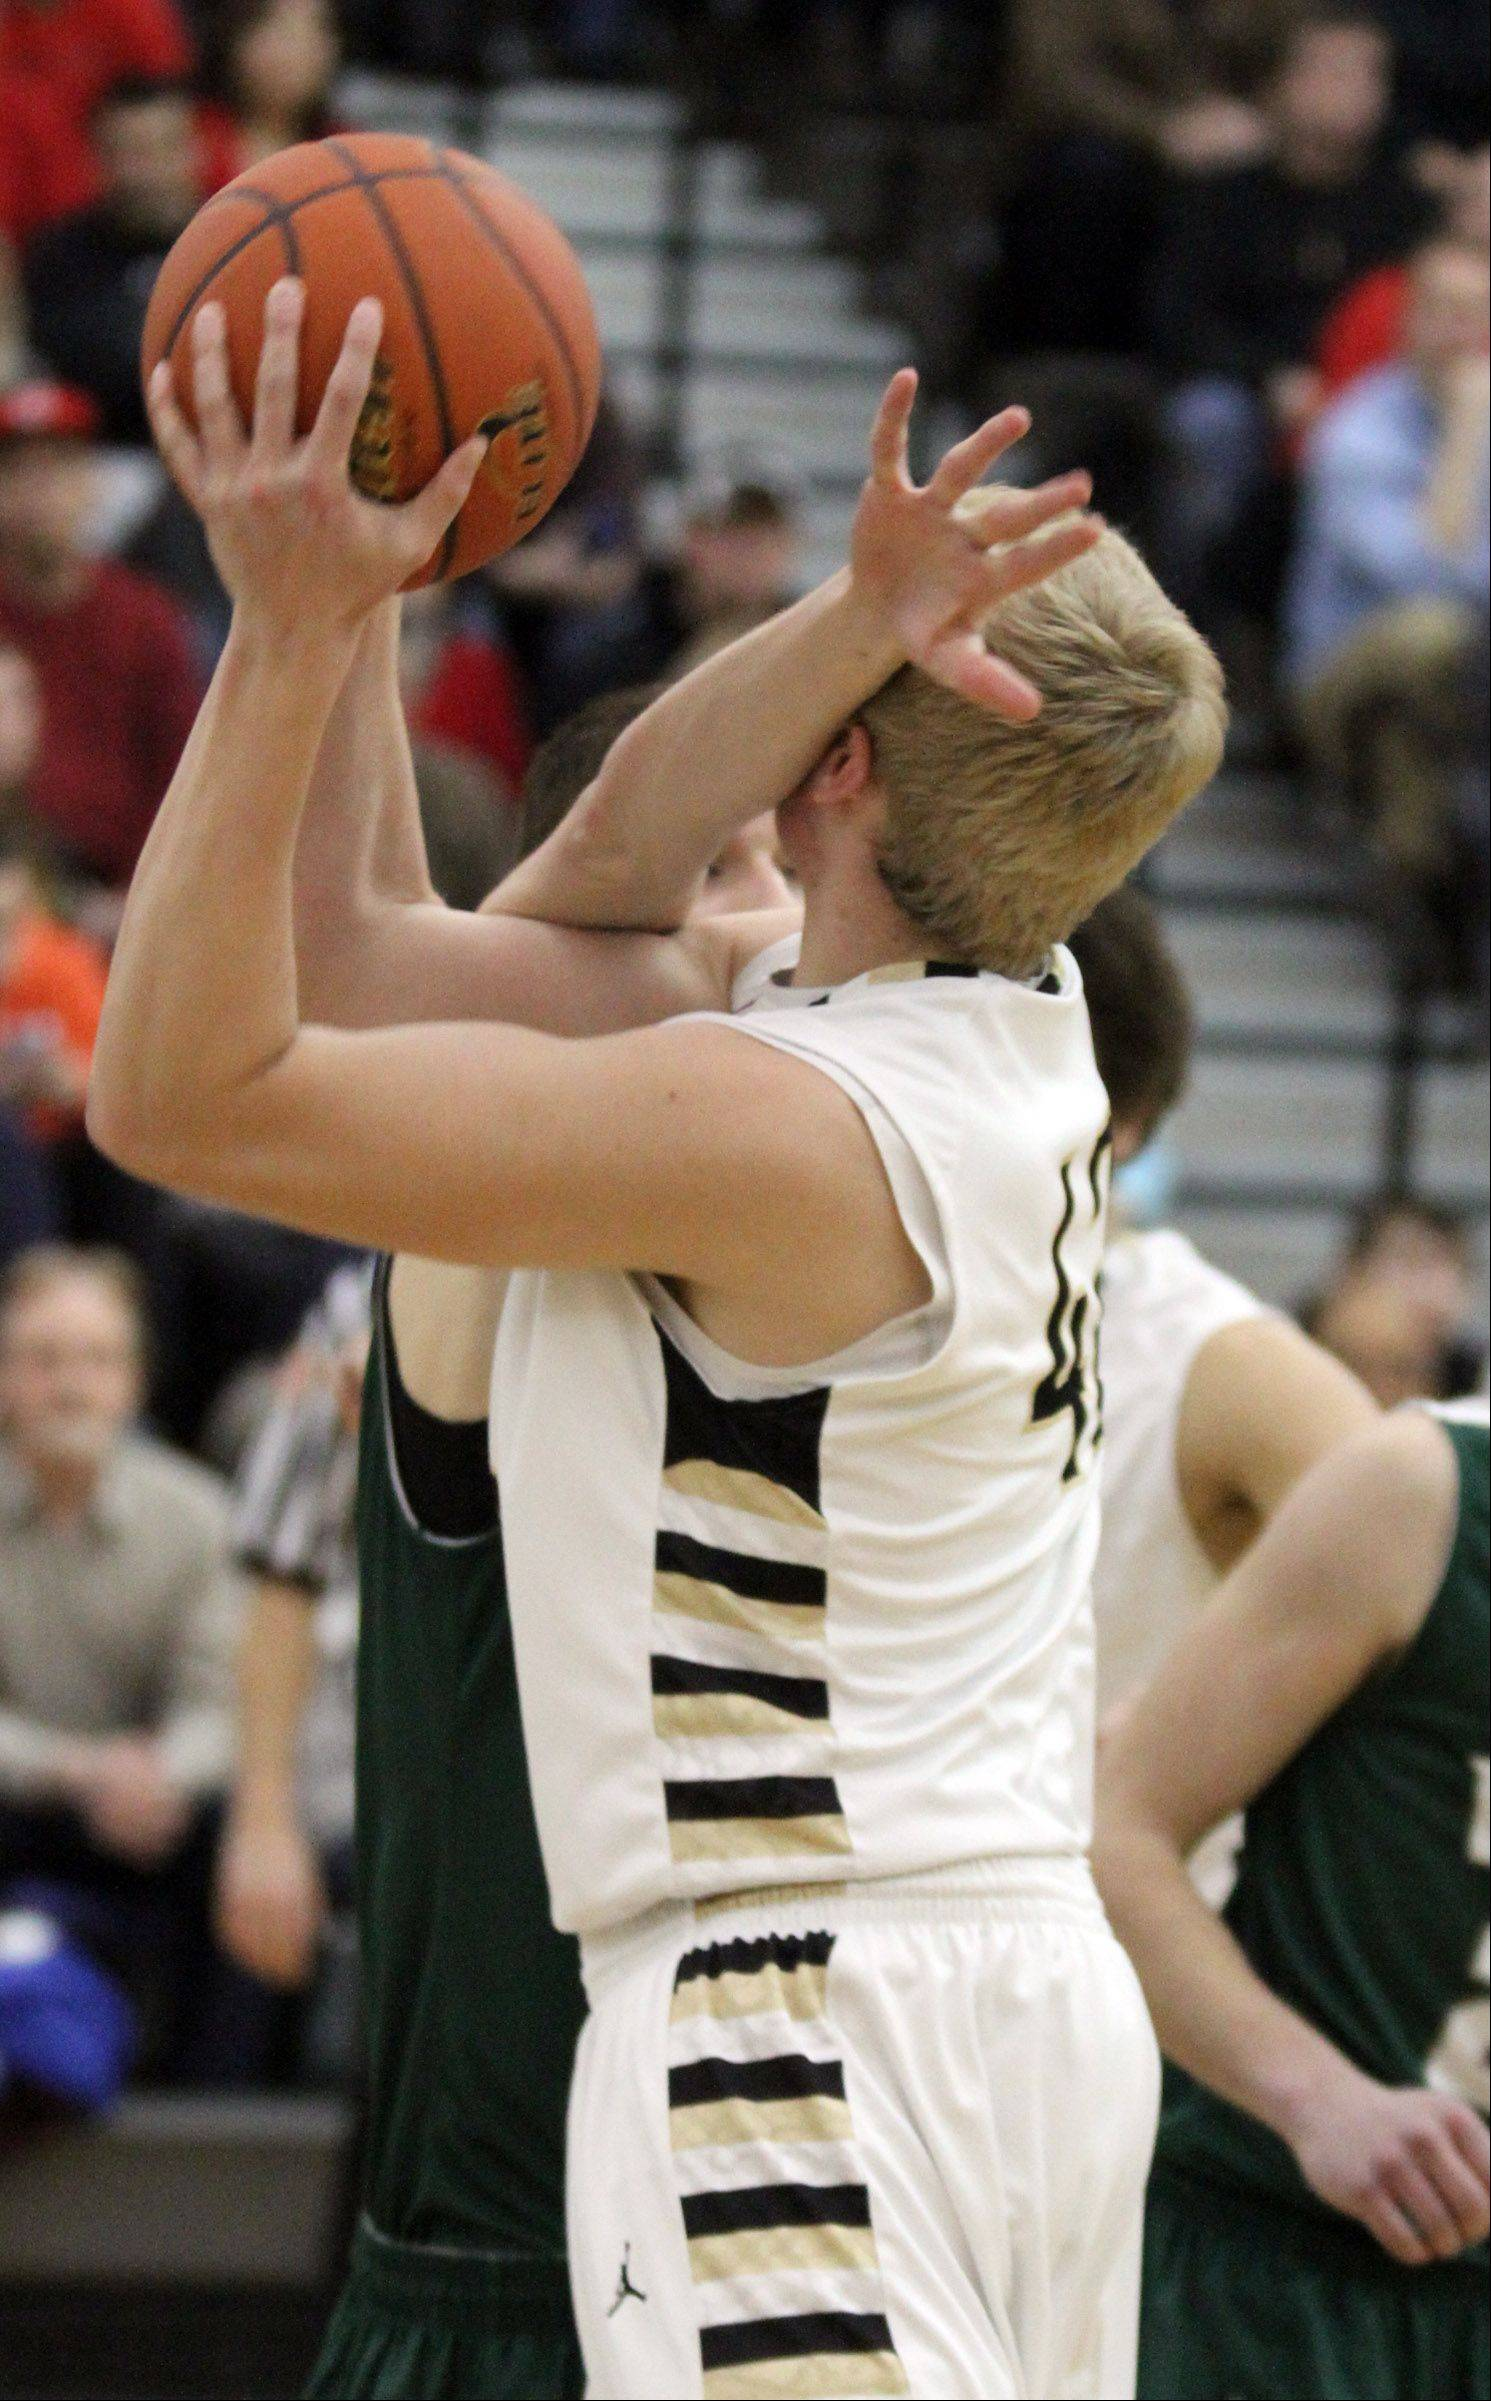 Images from the Grayslake Central at Grayslake North boys basketball game Friday, Jan. 25.